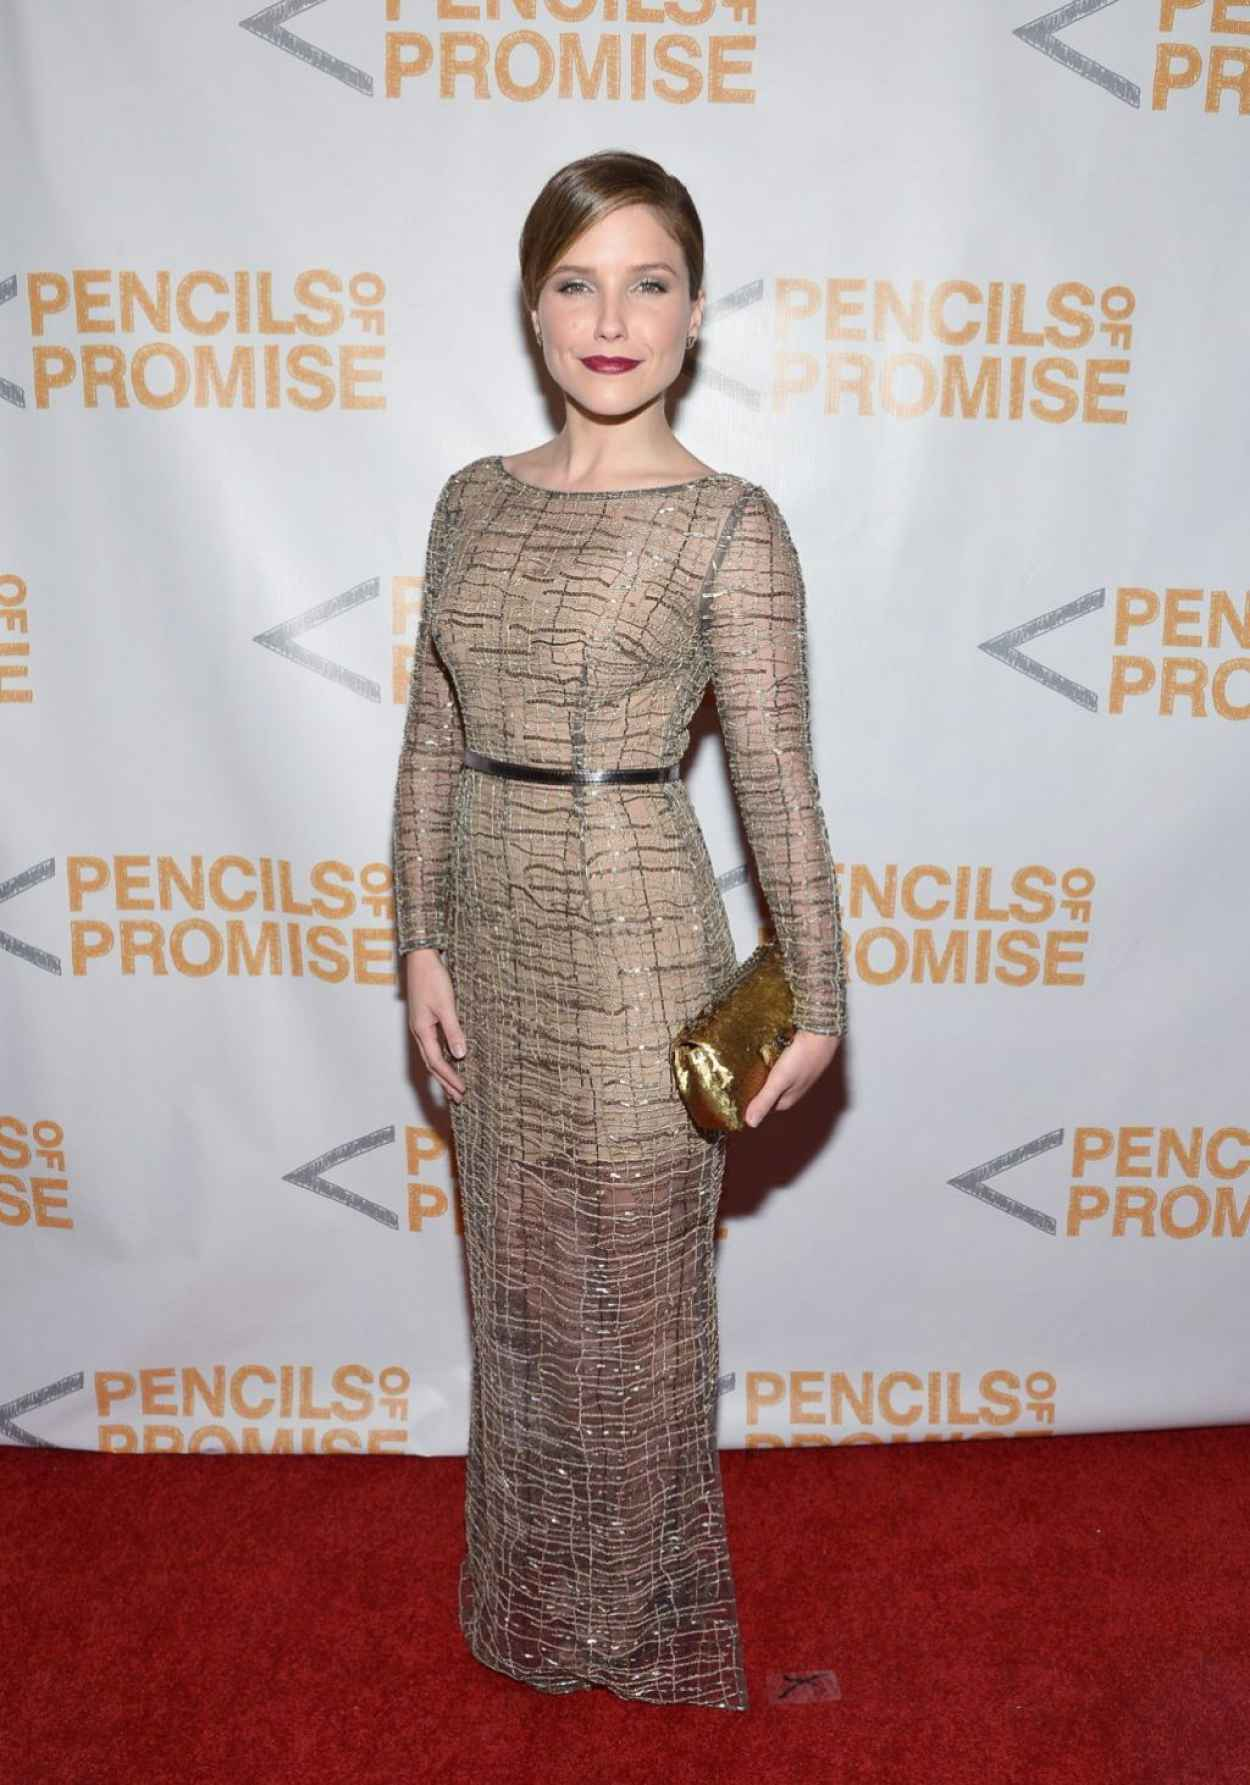 Sophia Bush - Third Annual Pencils of Promise Gala in New York City-1